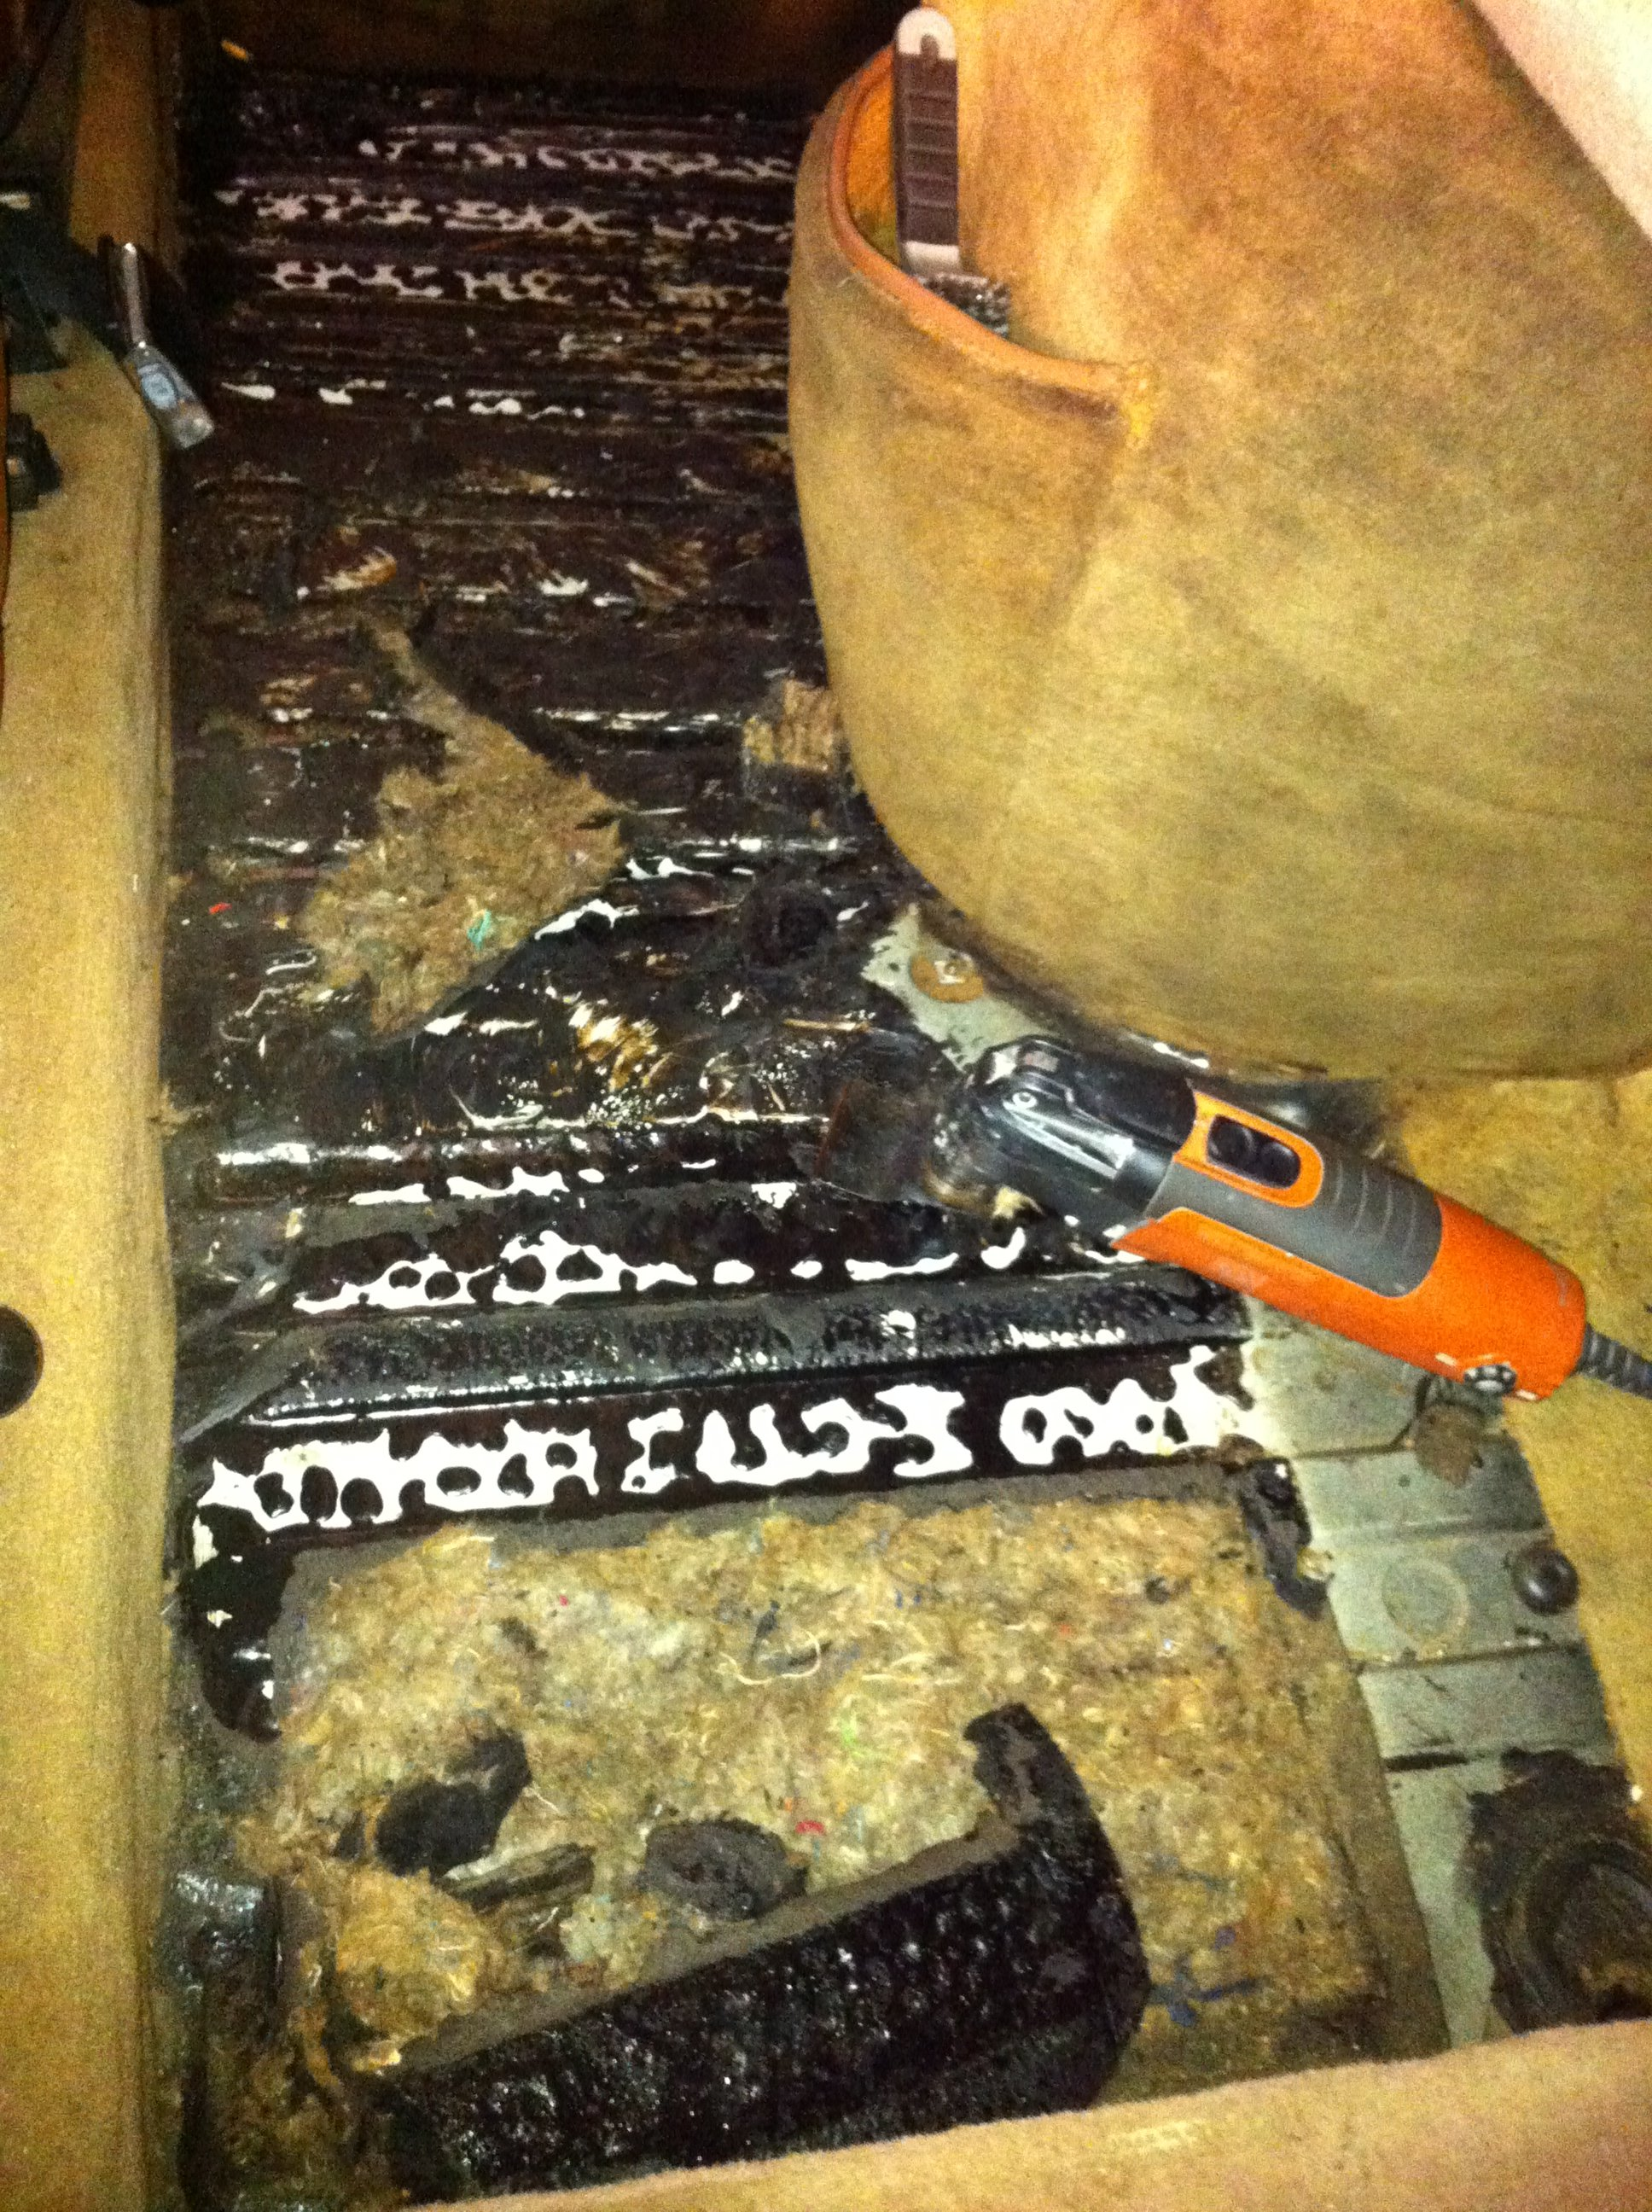 I closed the garage door, fired up the keroene heater and scraped the oil-soaked carpet and insulation off the front floorboards using my Fein tool.